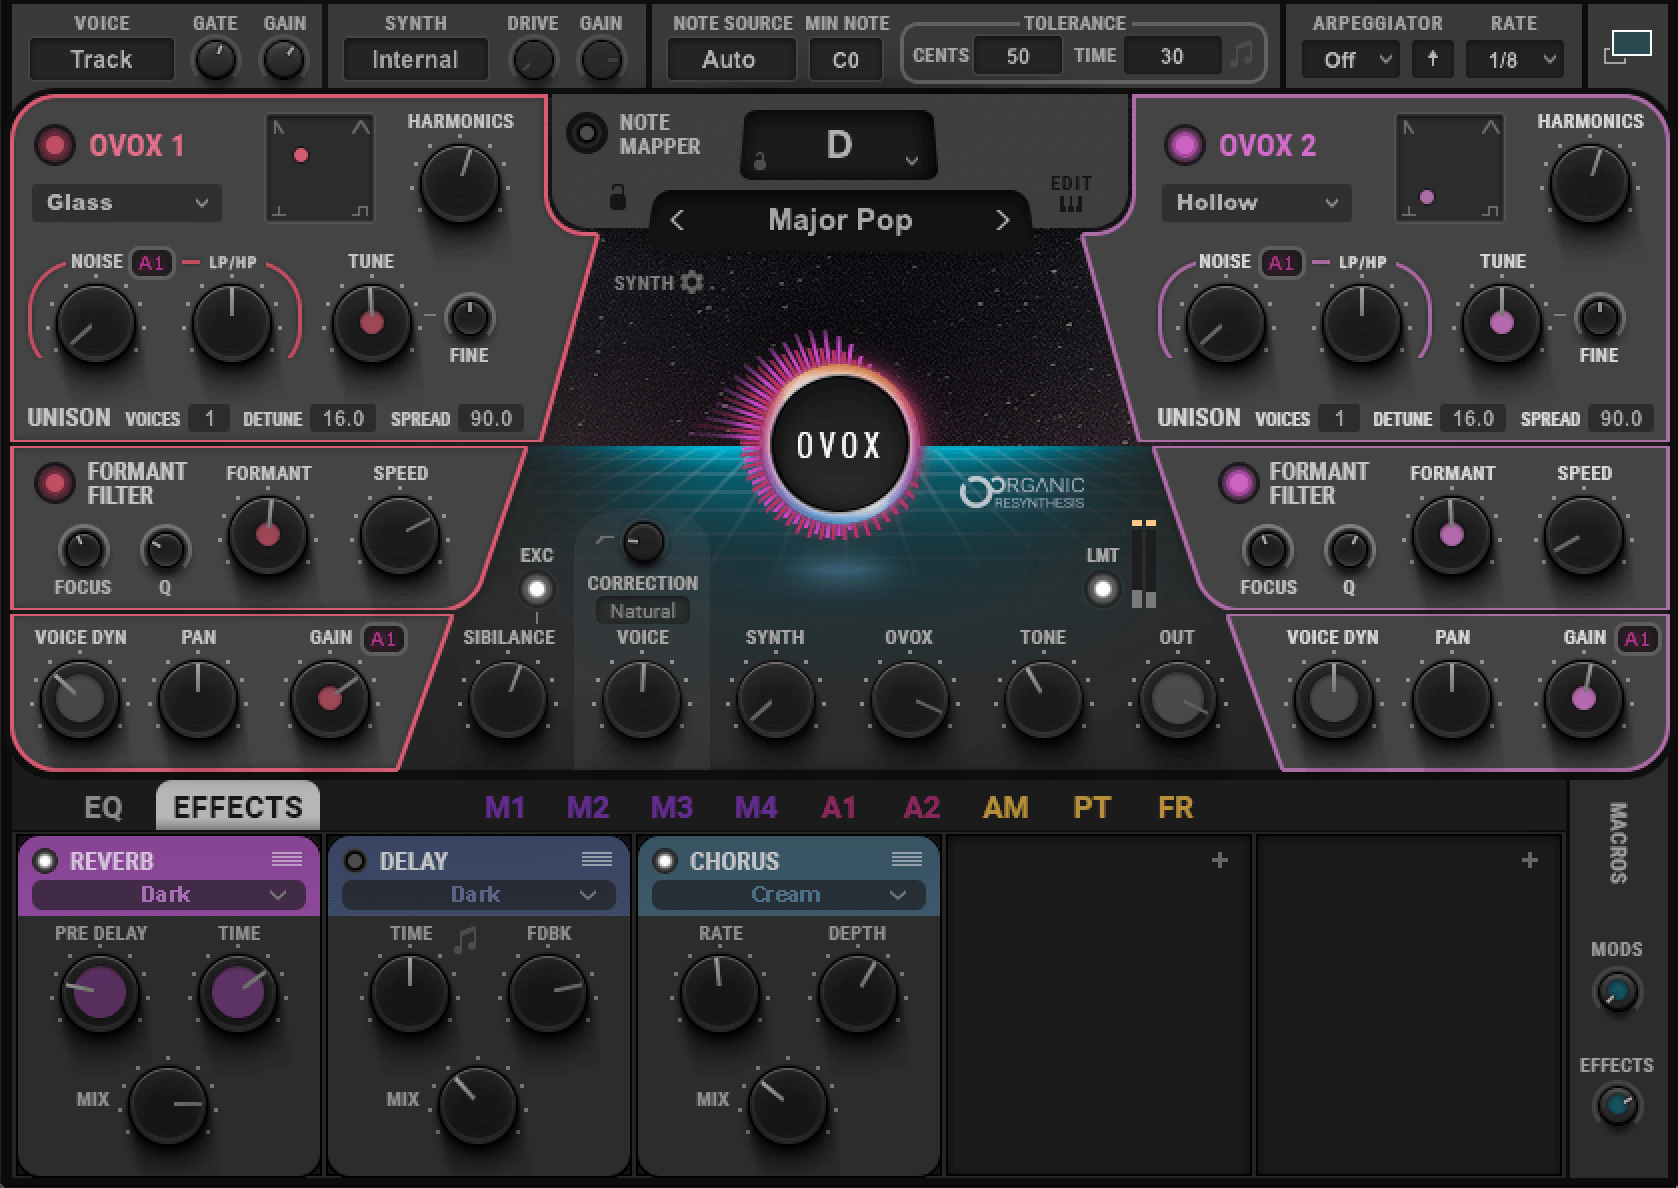 The Waves OVox settings used to create the ghostly Burial sound on vocal samples.